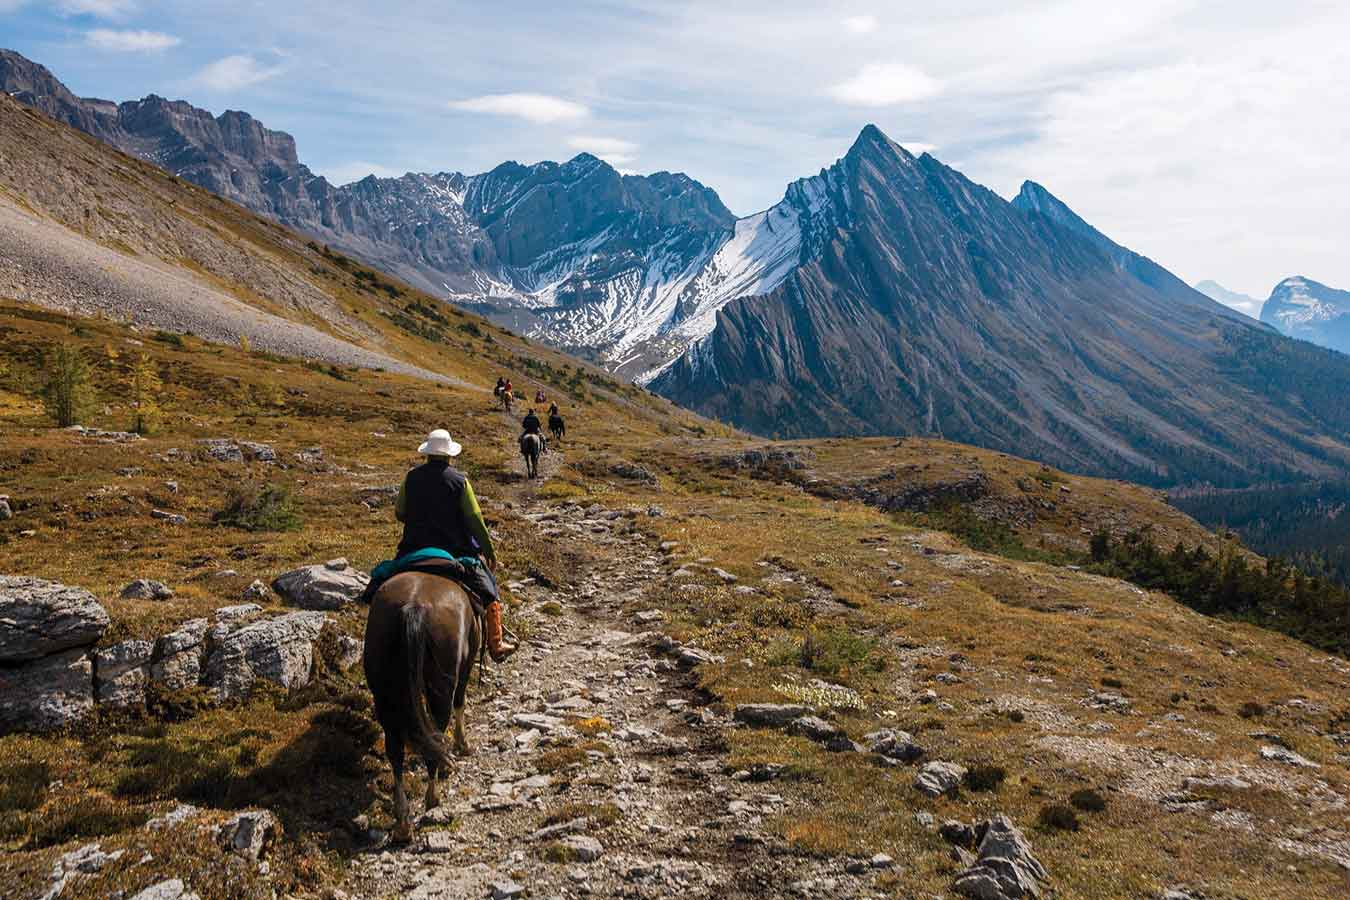 People ride into the backcountry on horseback